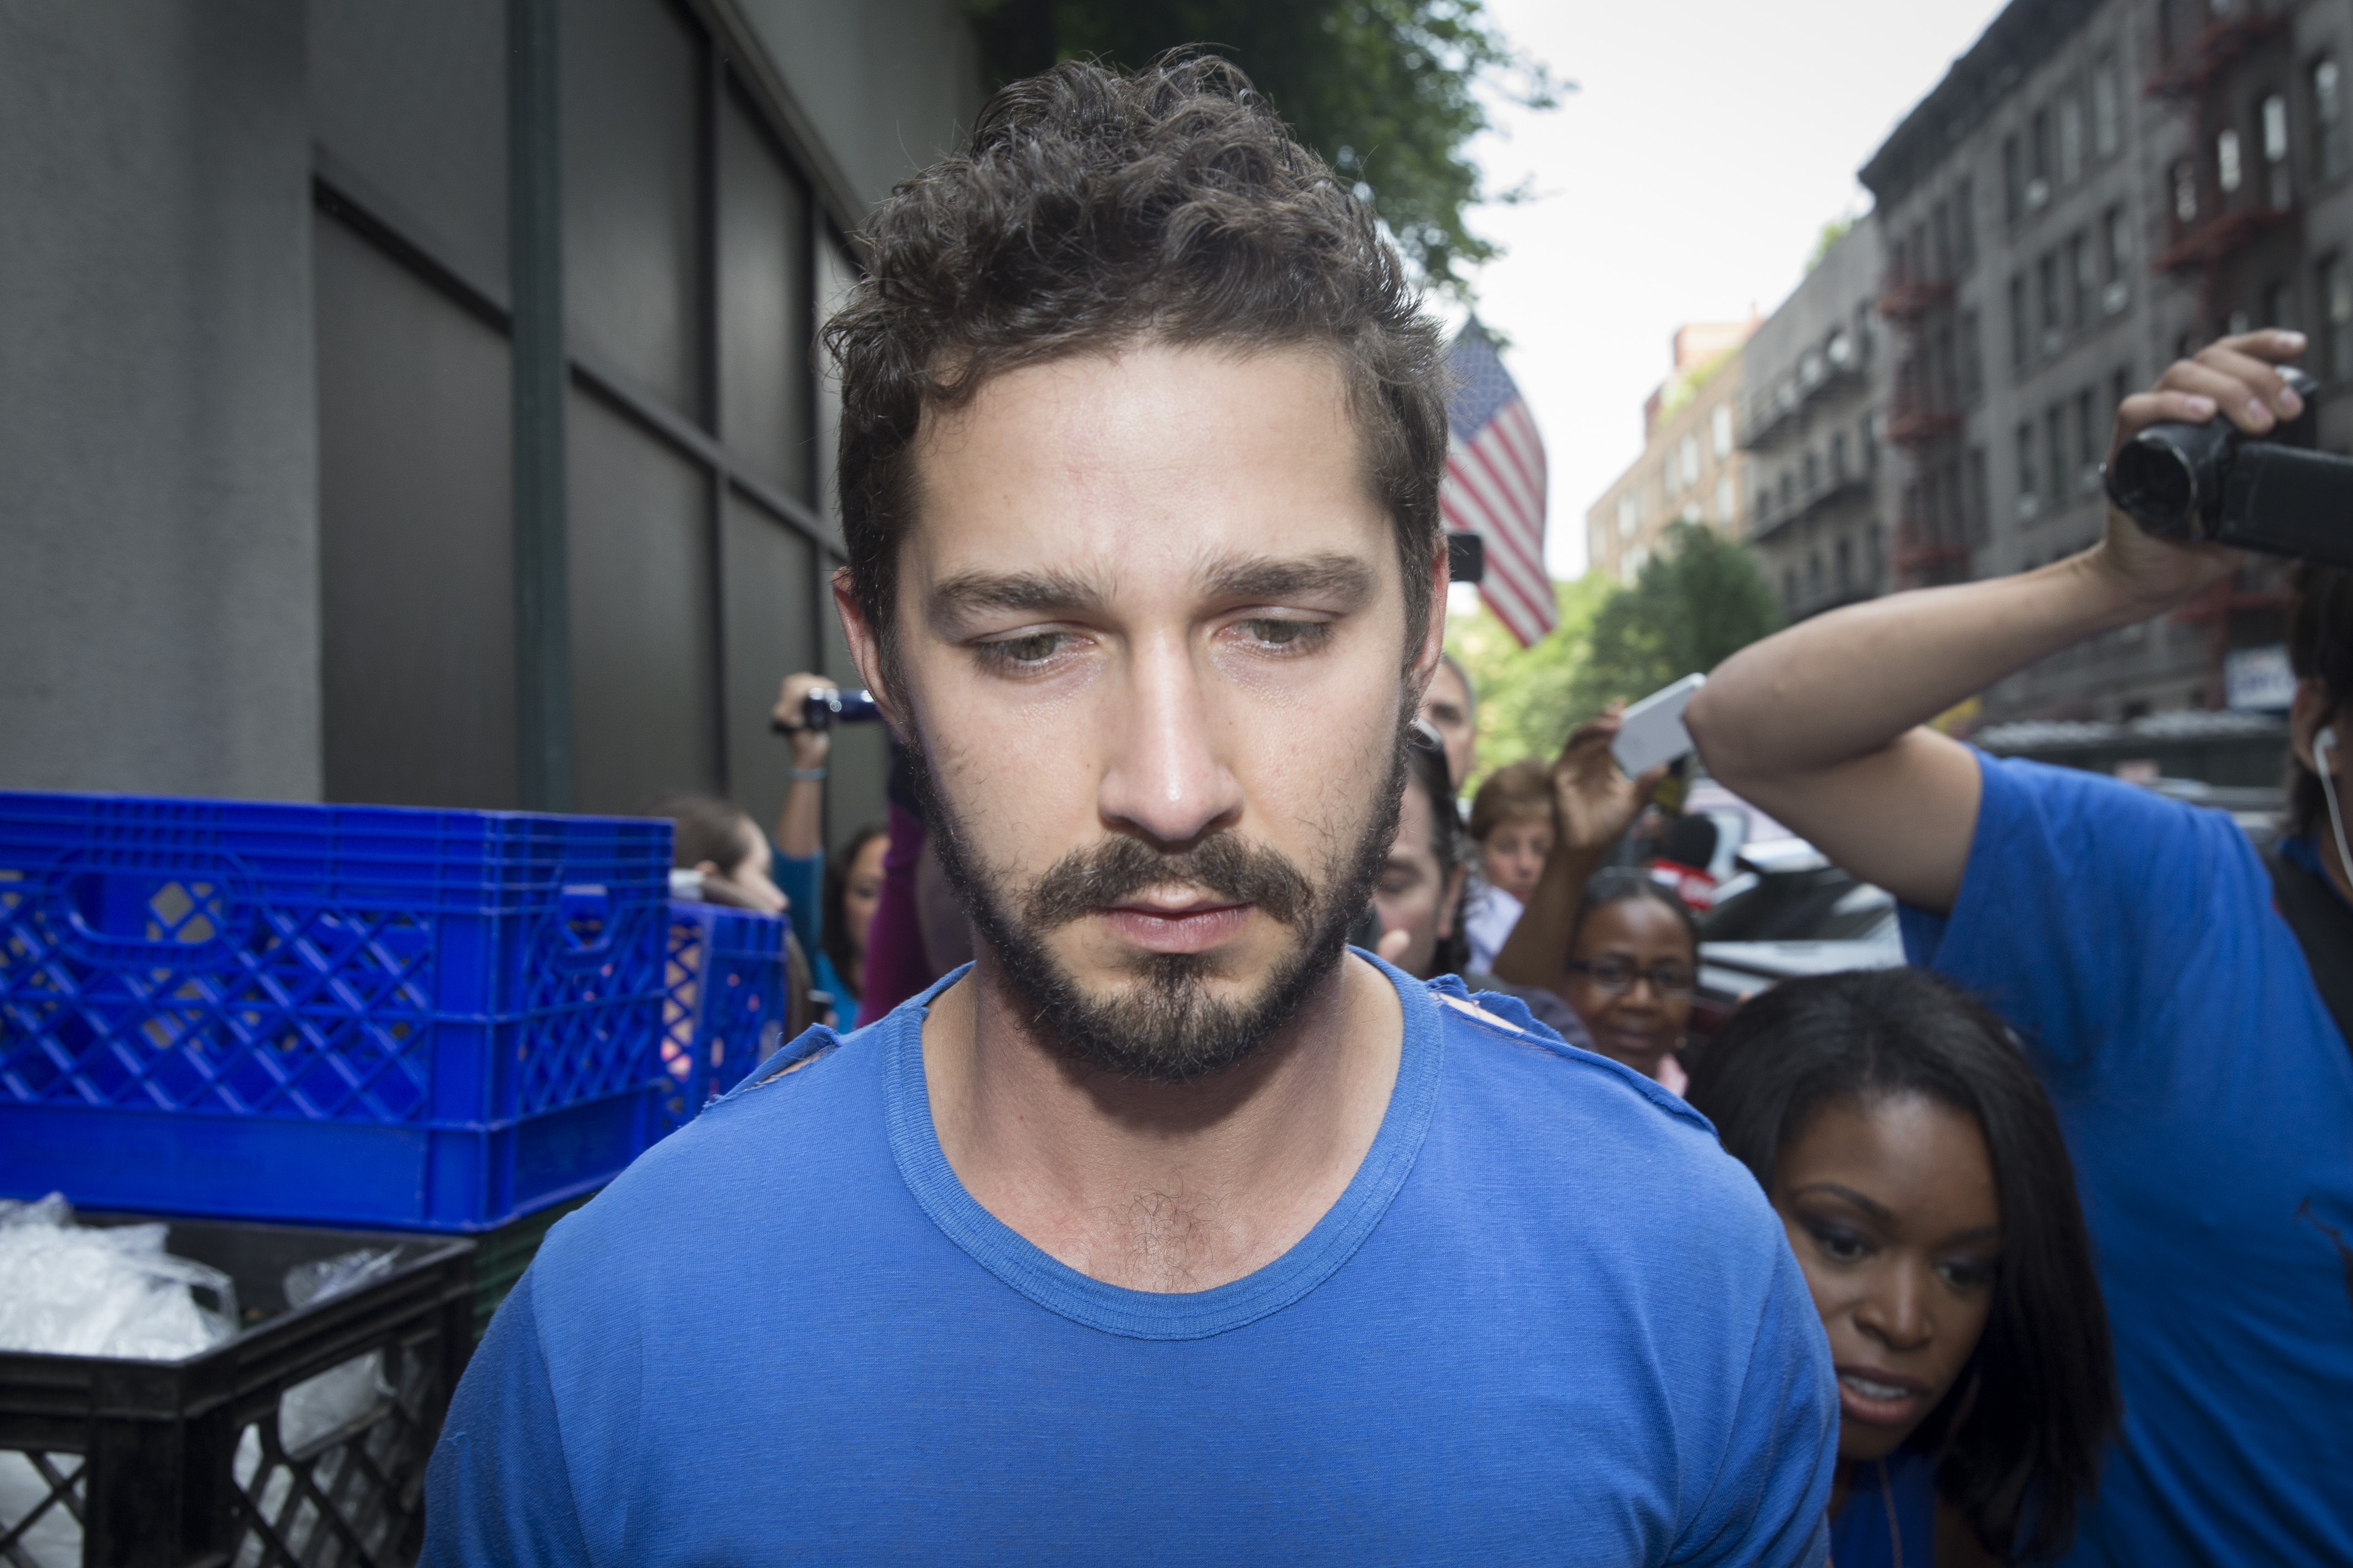 Shia LaBeouf 'receiving treatment for alcohol addiction' but not in rehab, rep says